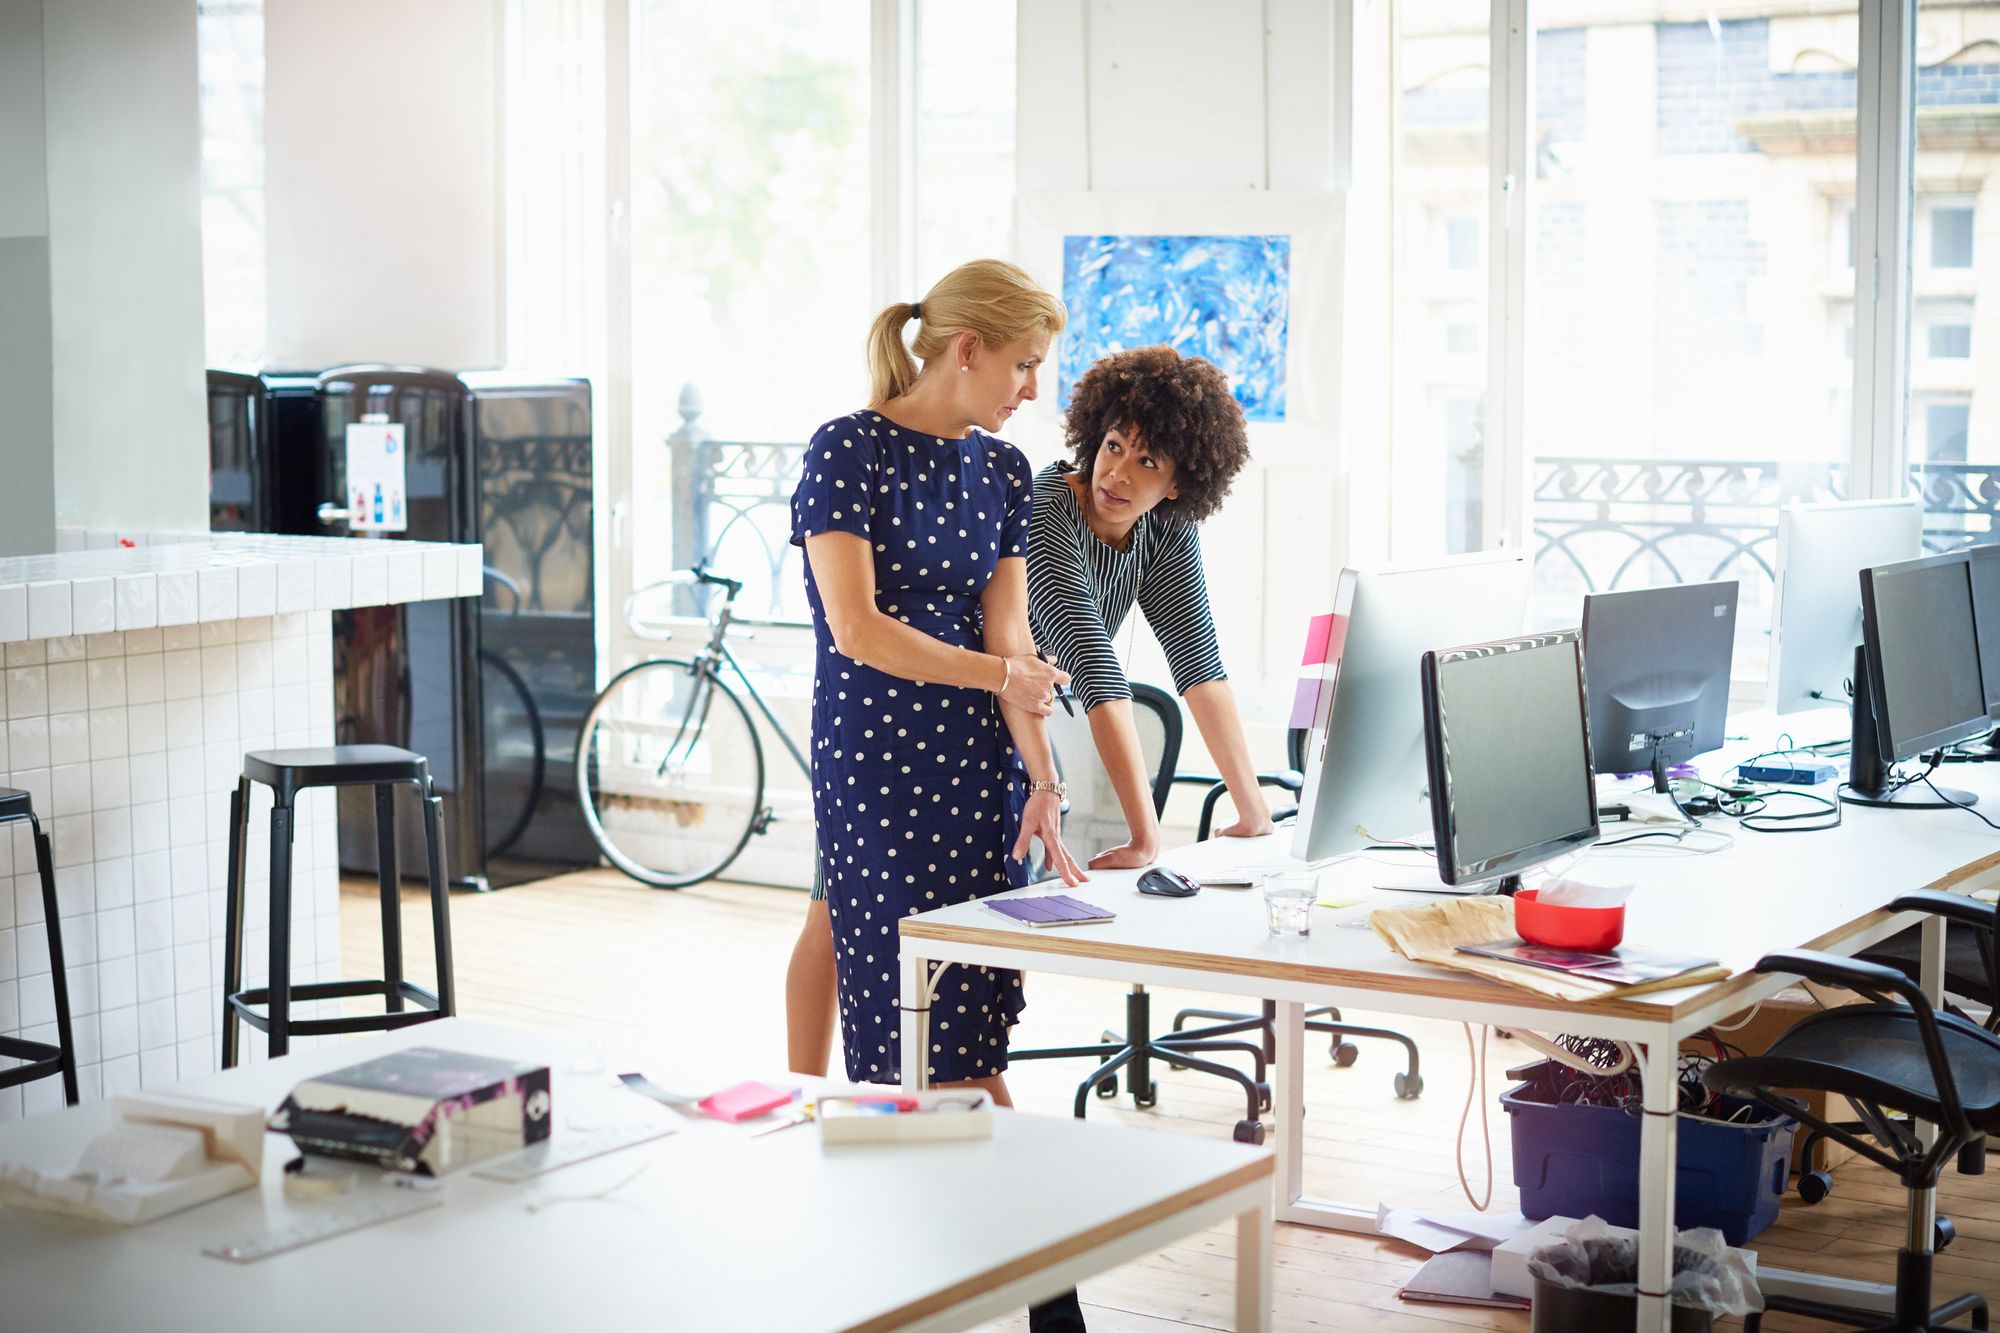 The Top 10 Mistakes That Keep Women Entrepreneurs From Scaling to $1 Million